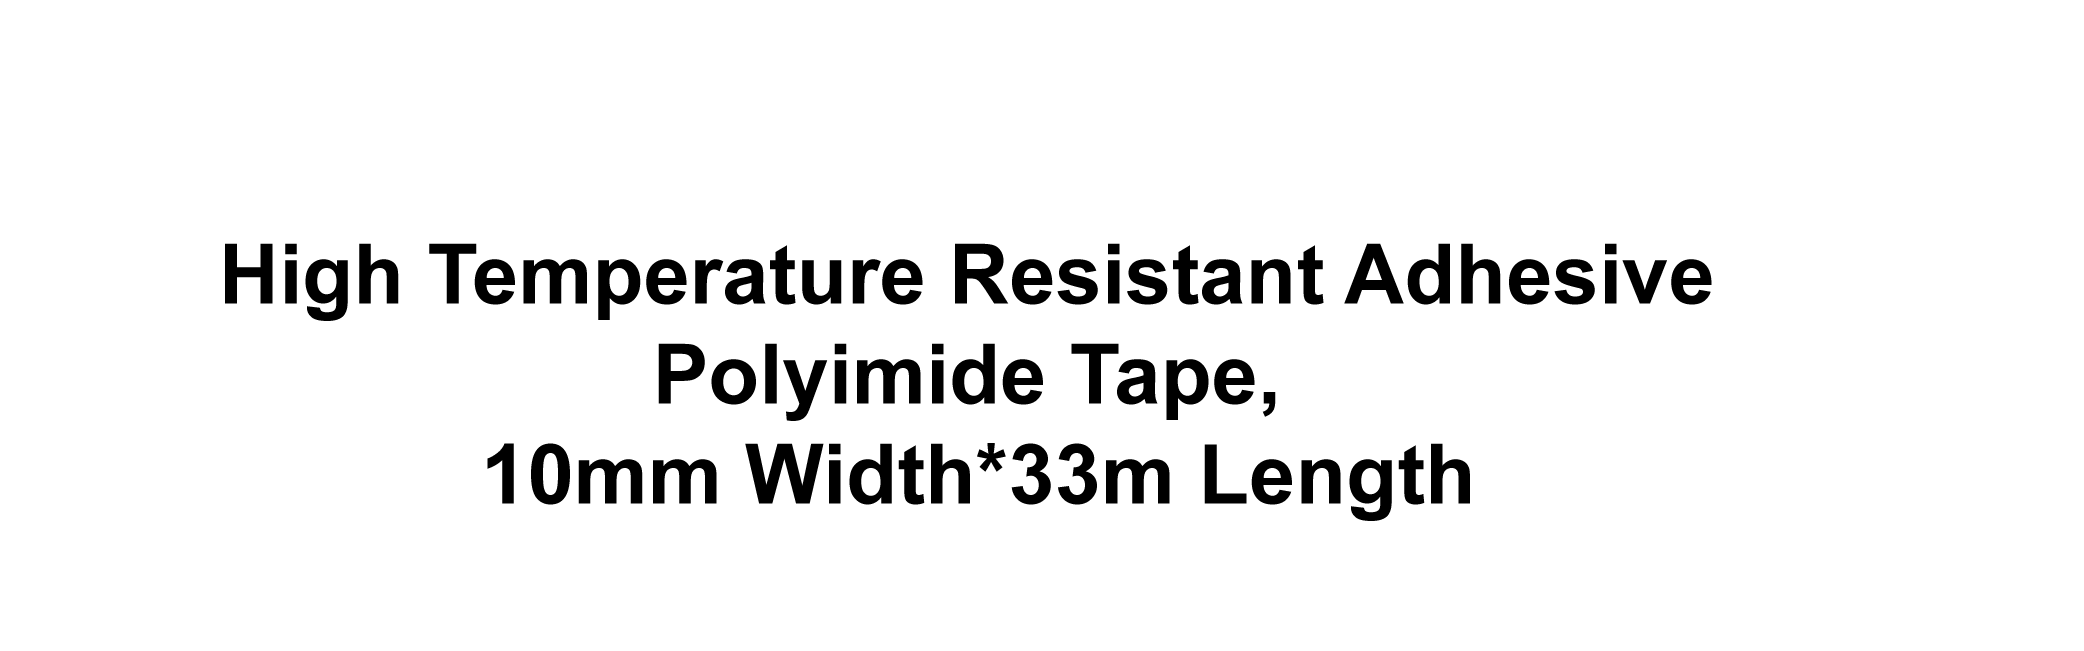 High Temperature Resistant Adhesive Polyimide Tape, 10mm Width*33m Length